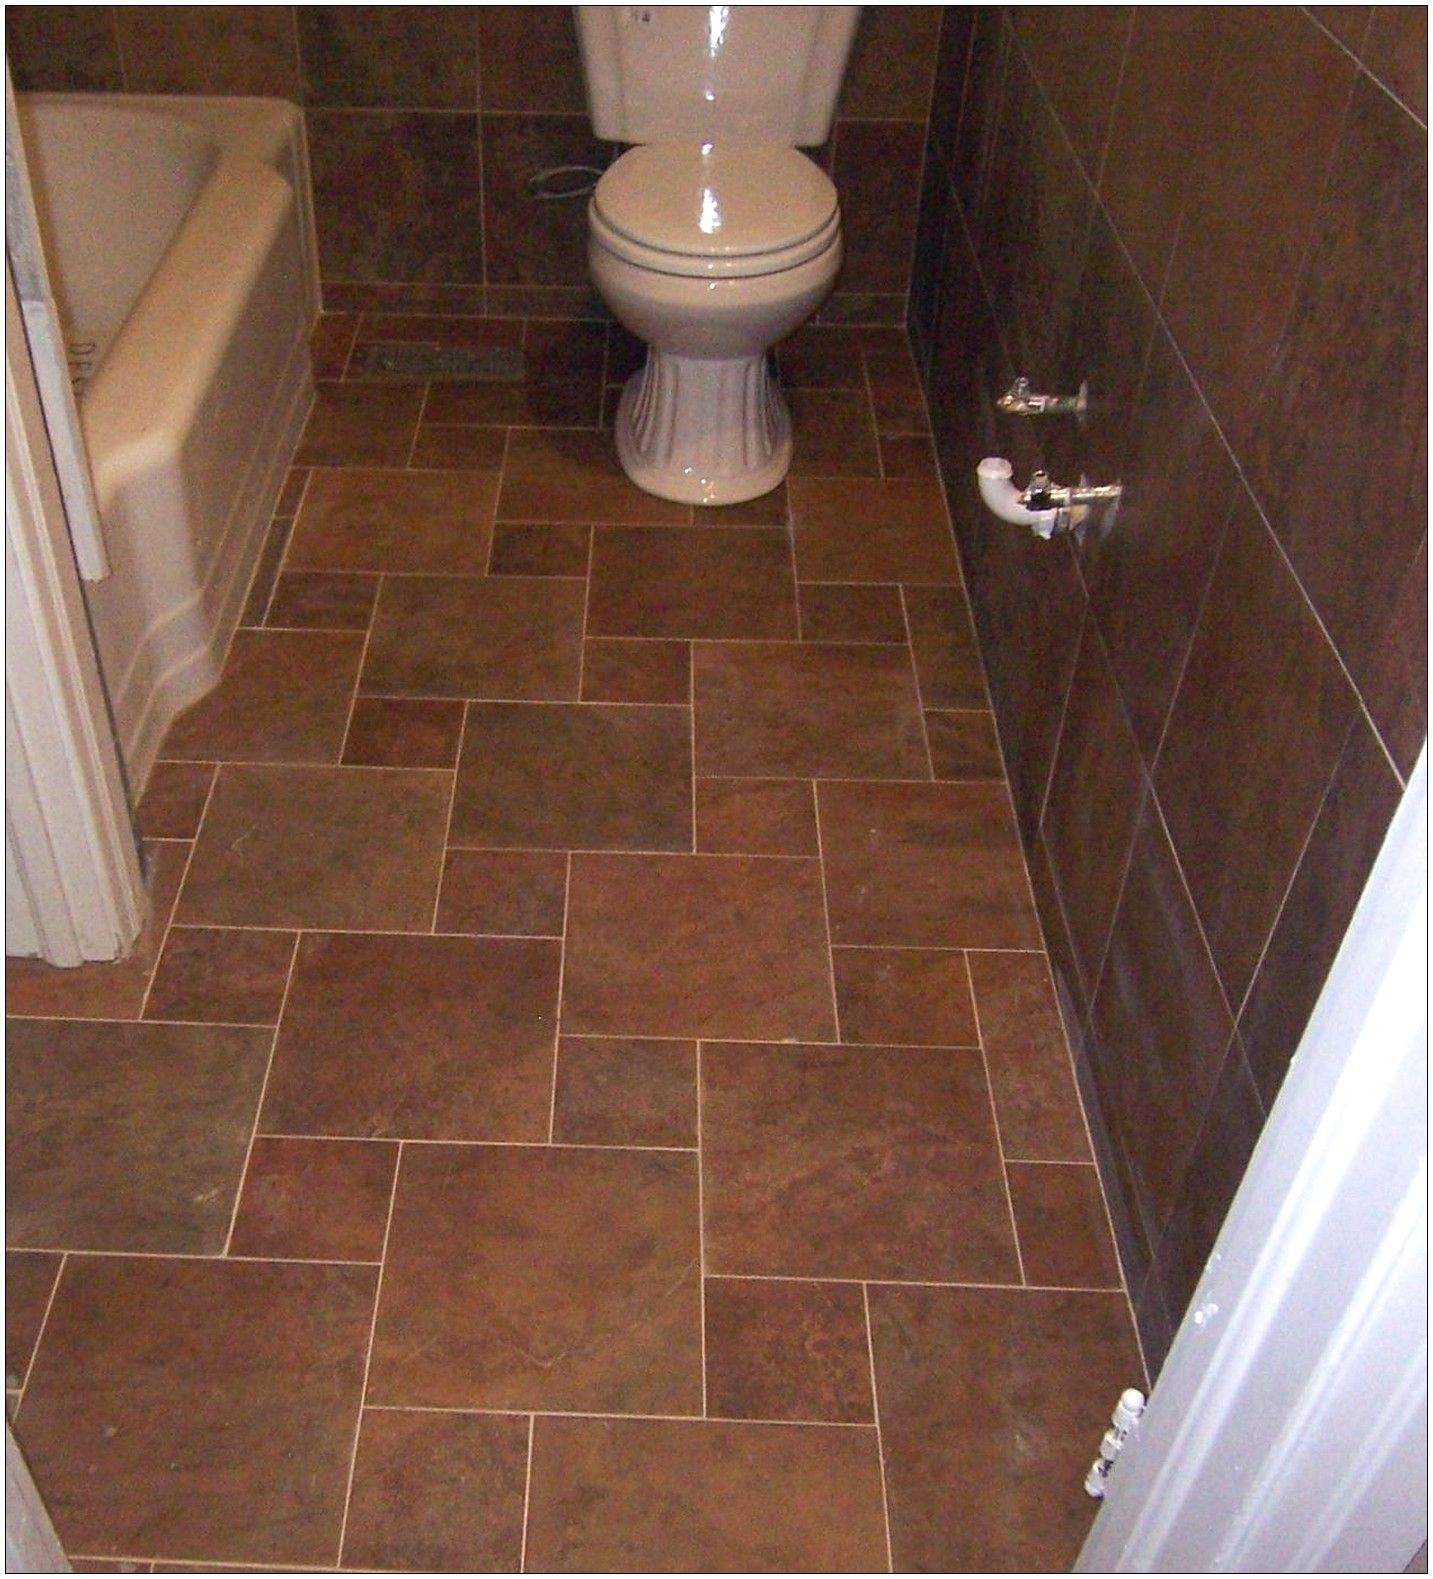 Tile For Bathroom Floor mosaic Small Bathroom Floor Tile Designs Bathroom Floor Tile Patterns Jpg